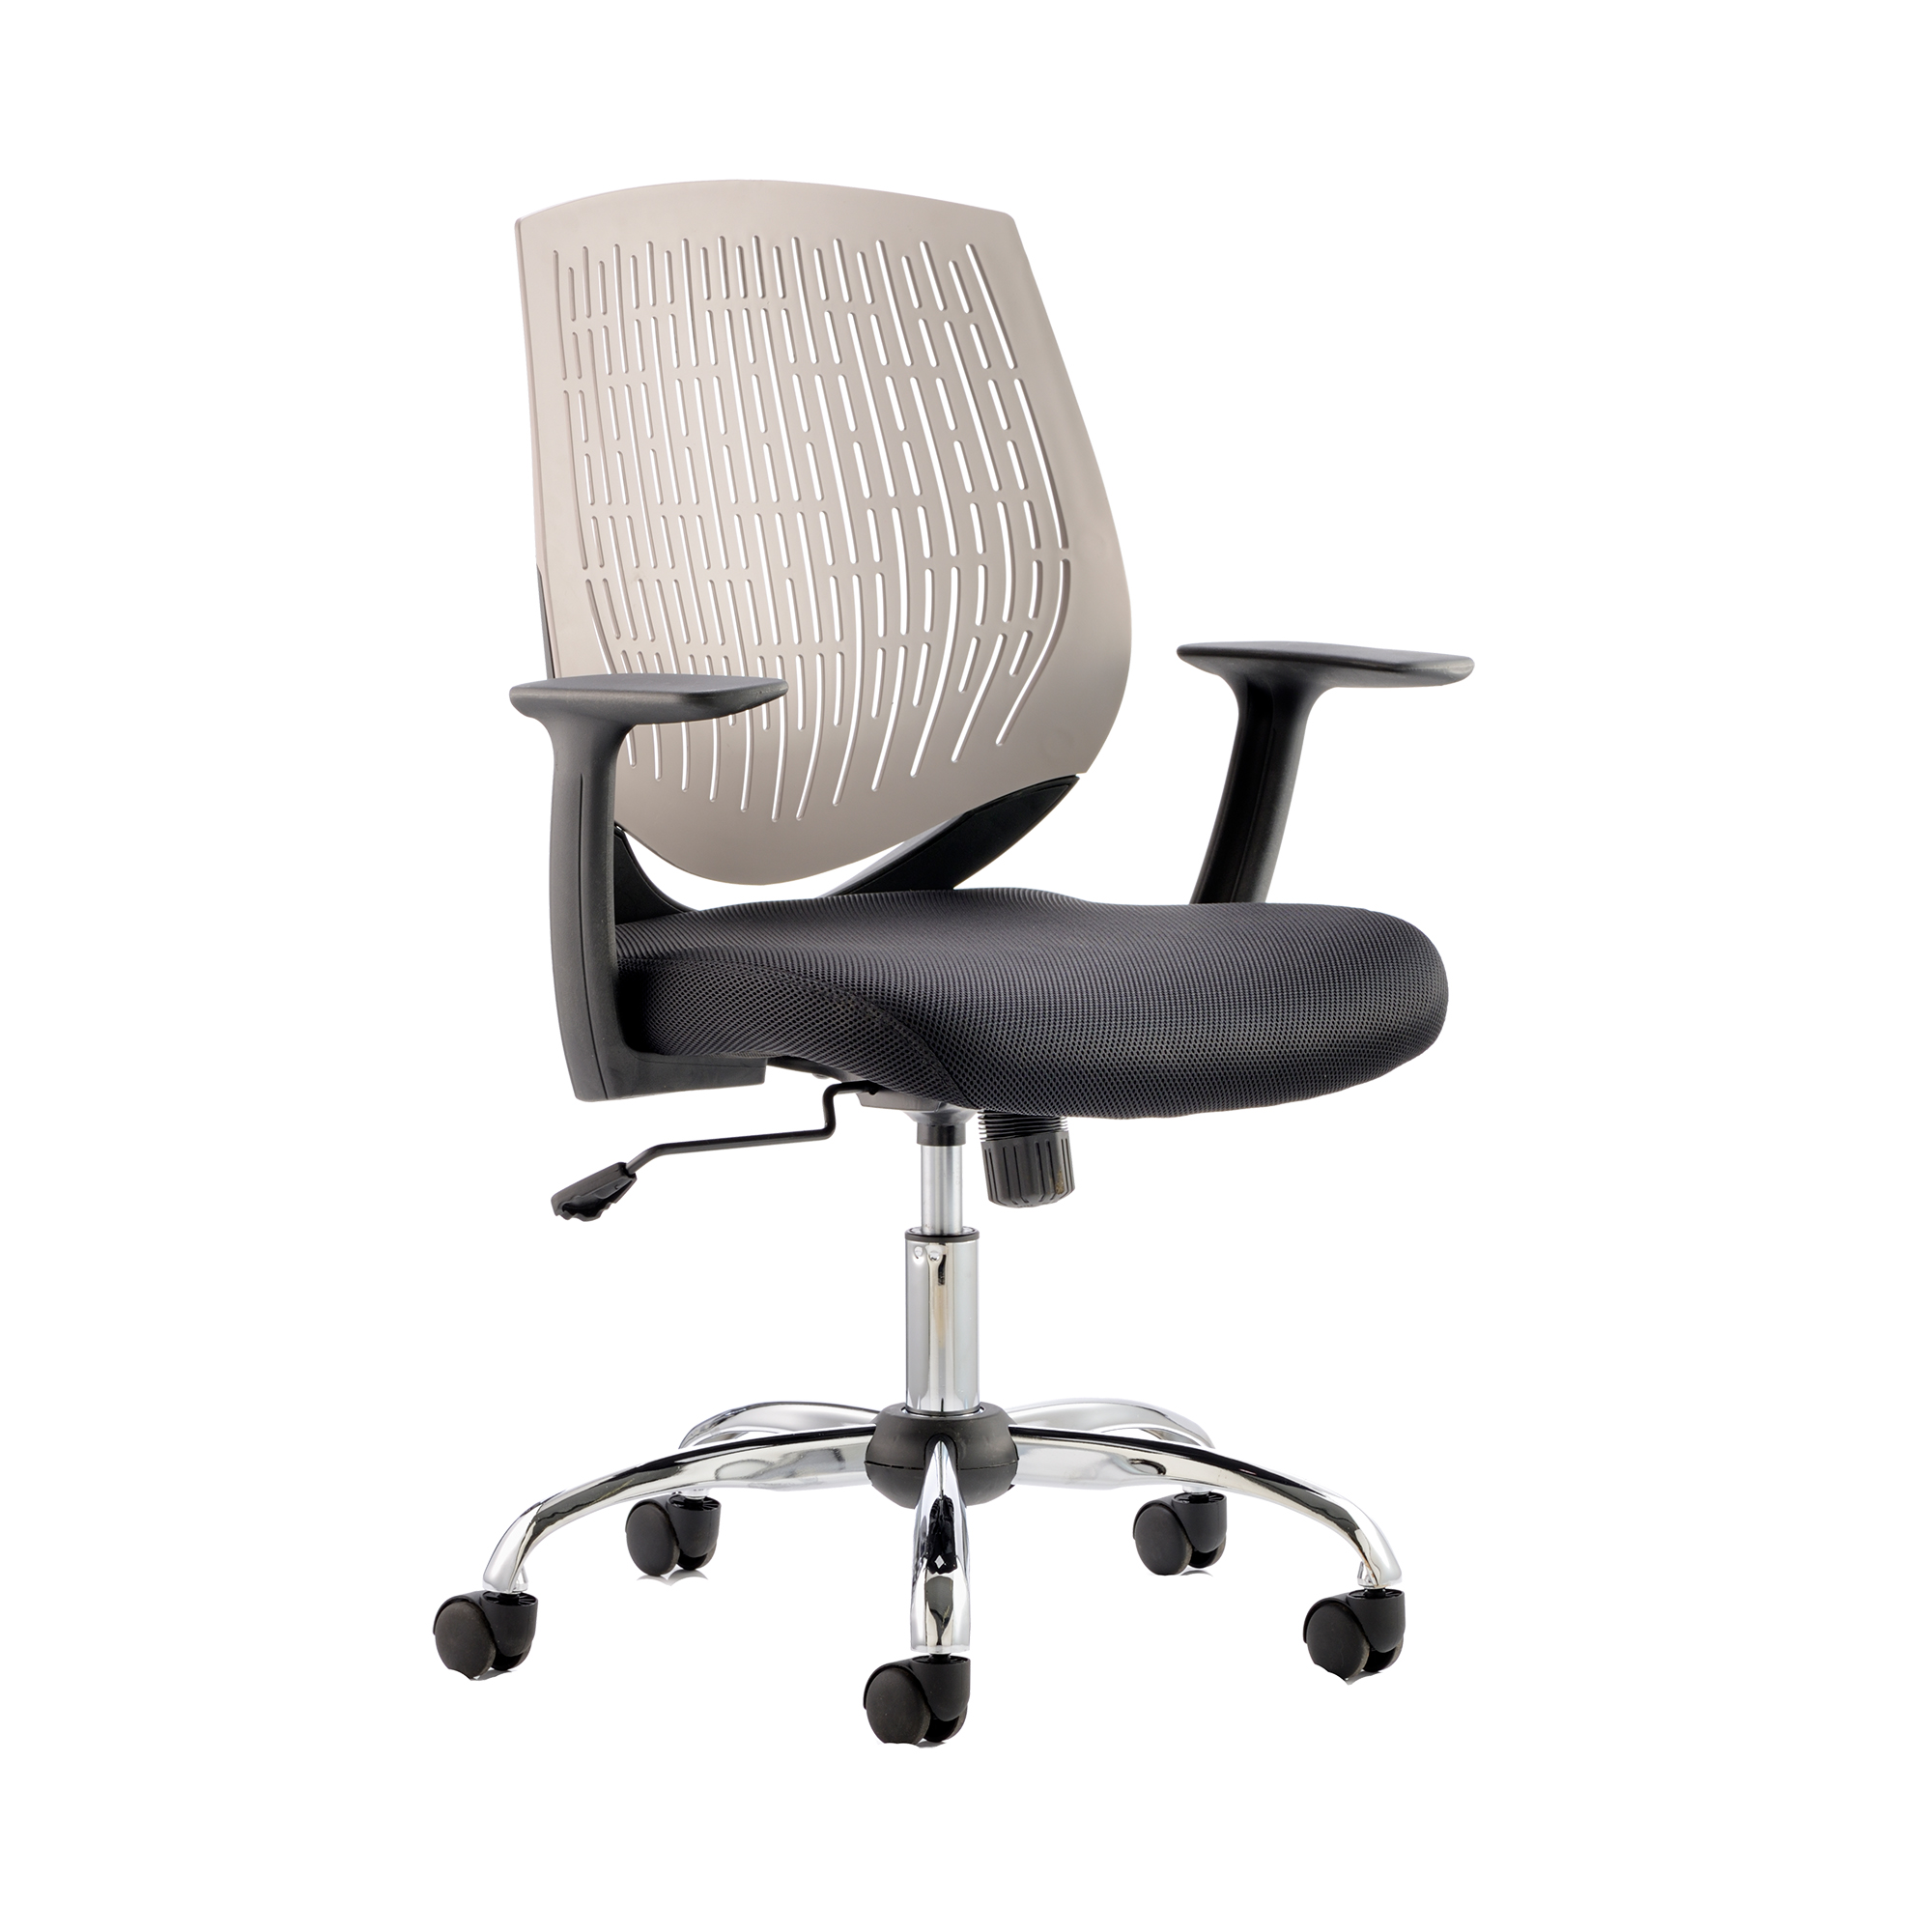 Guest seating Trexus Dura Task Operator Chair With Arms Grey Ref OP000017